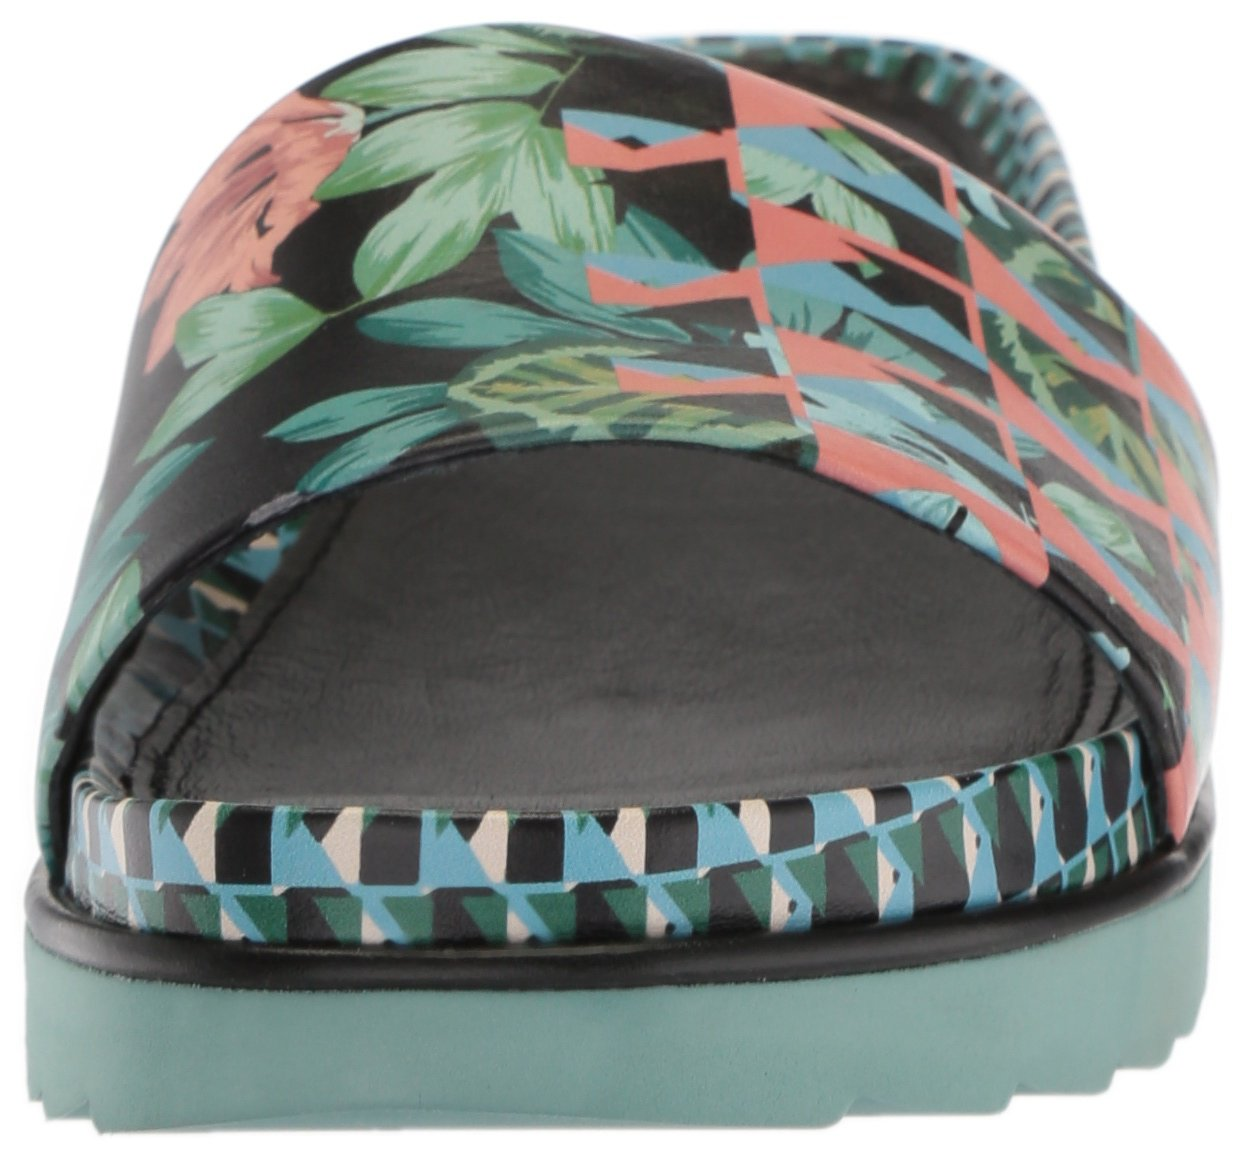 Donald J Pliner Women's Cava Slide US|Black Sandal B0755BD1VH 5.5 B(M) US|Black Slide Geo Jungle 8fc9c6